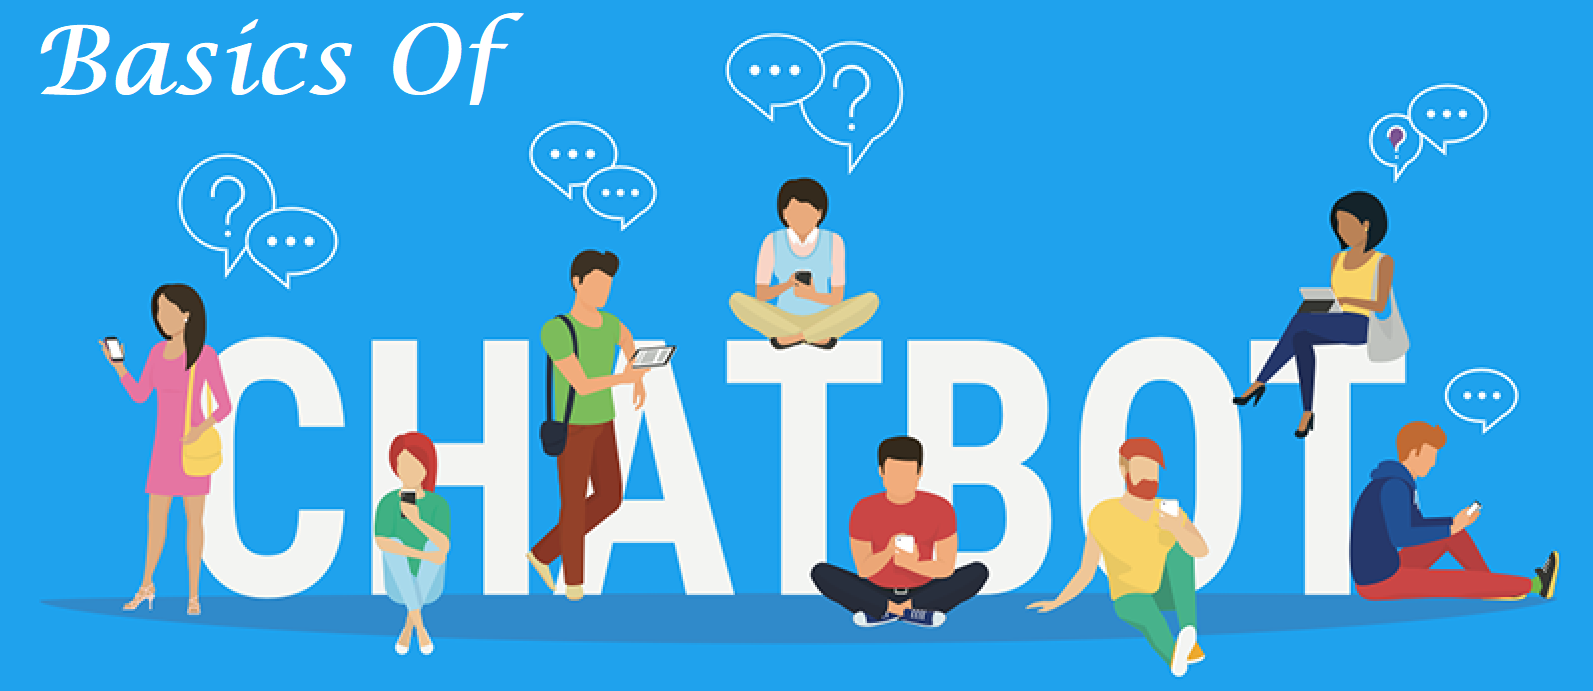 What Is A Chatbot? An Overview Of Chatbots In 2019 – Web